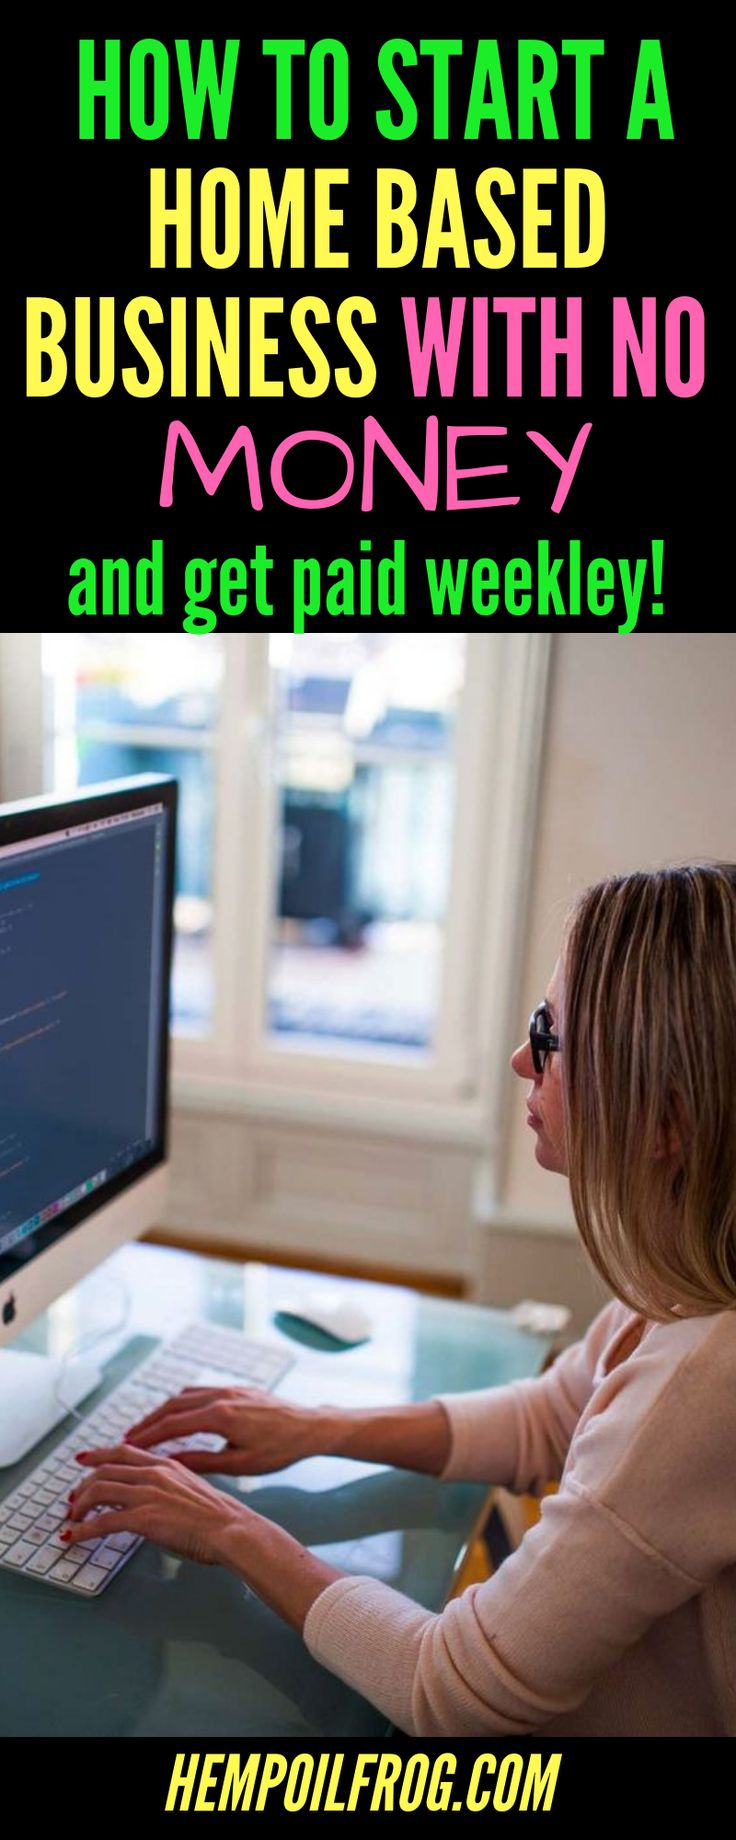 How to start a home based business and get paid weekley!